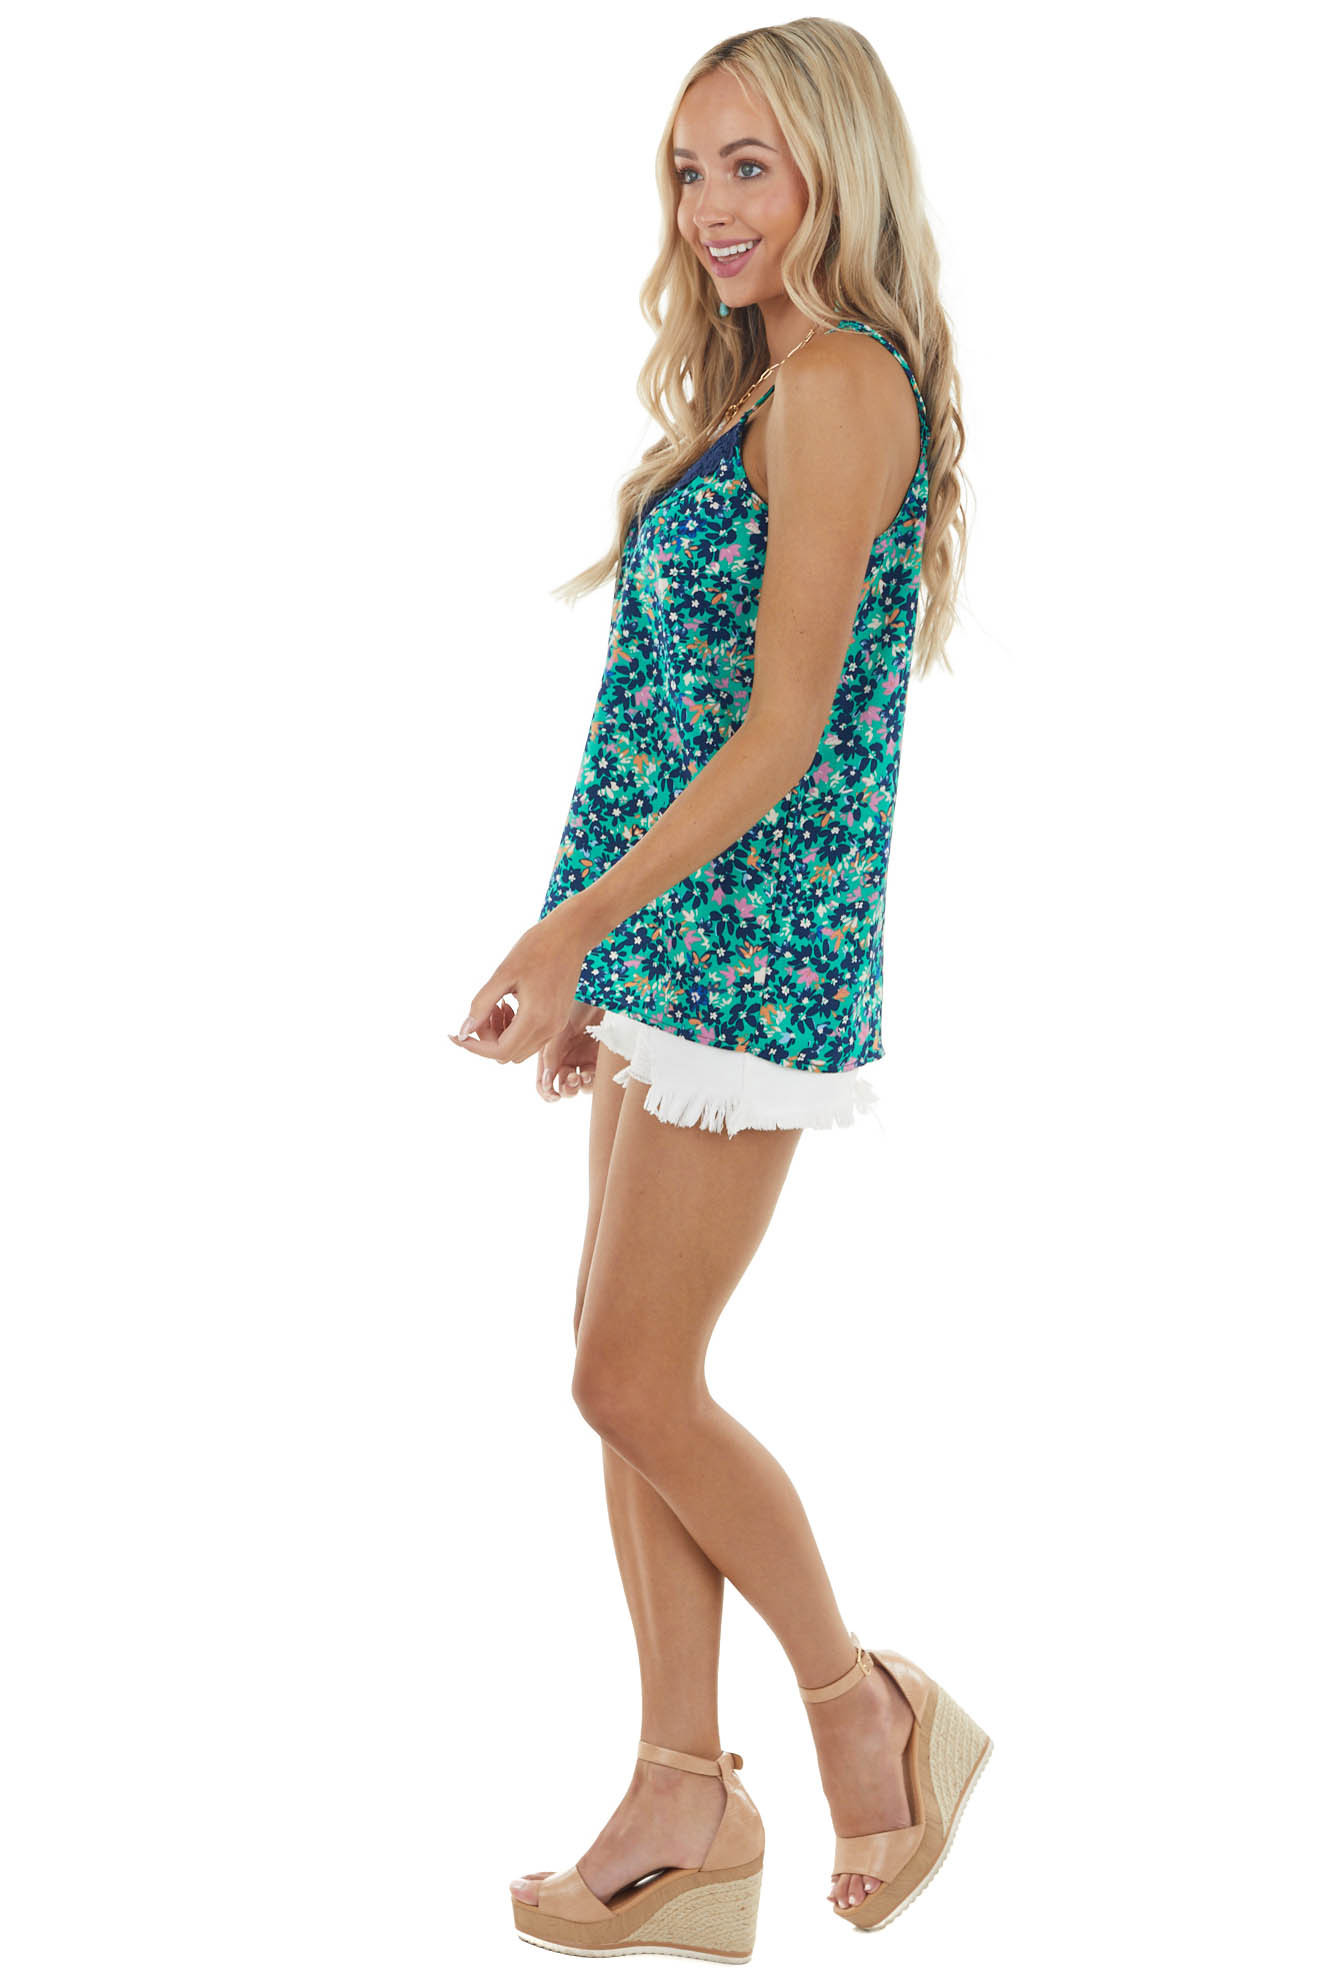 Kelly Green Floral Print Sleeveless Top with Lace Detail